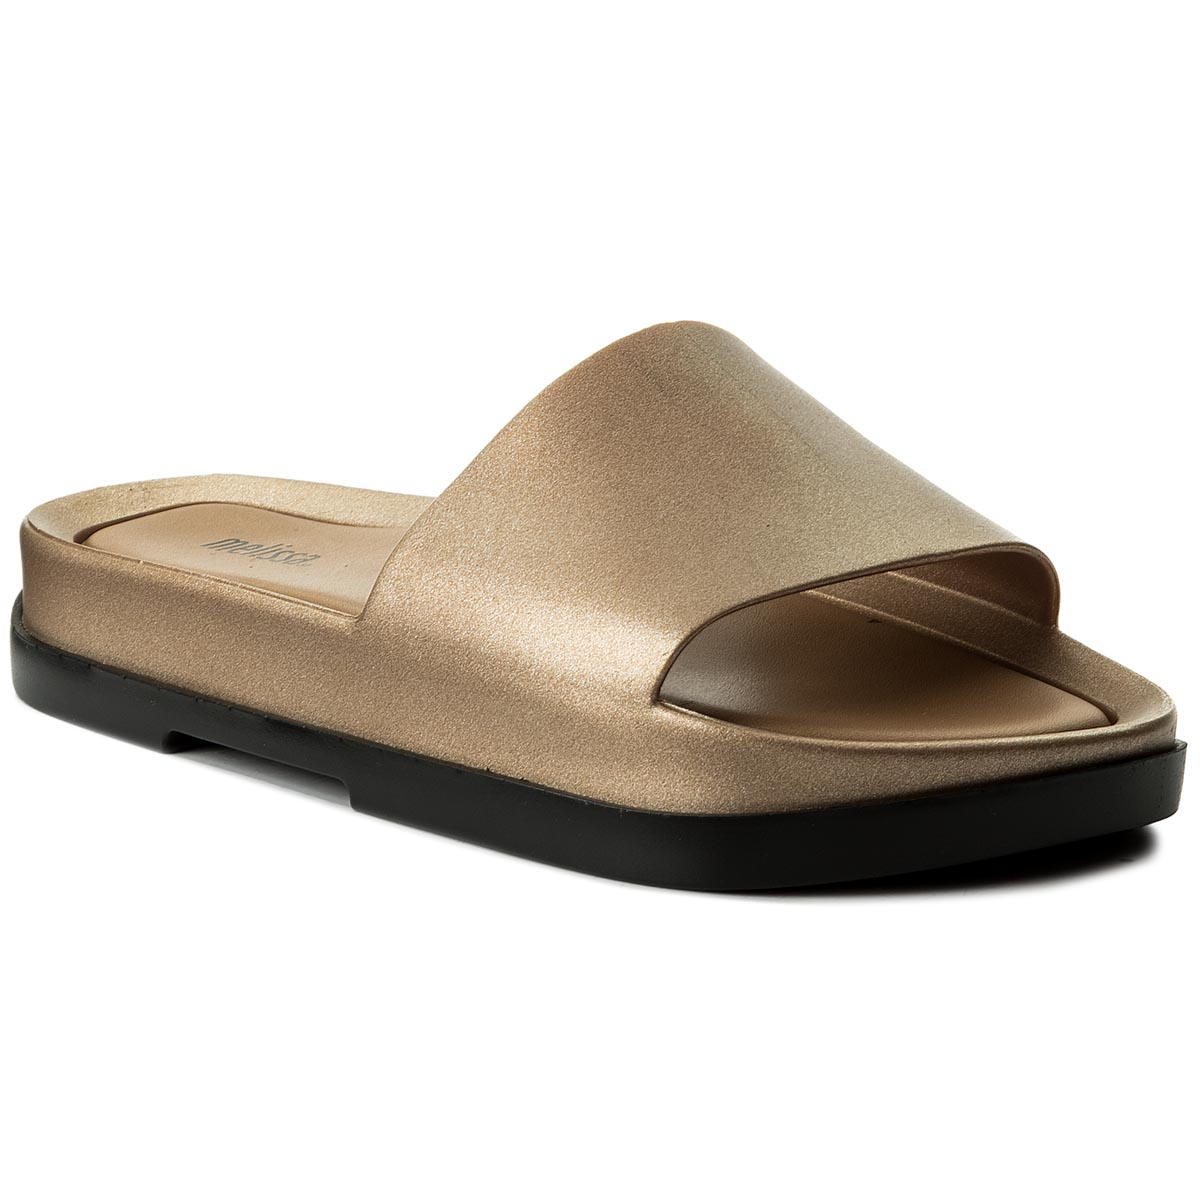 Klapki MELISSA - Beach Slide Platform A 32350 Black/Gold 50919